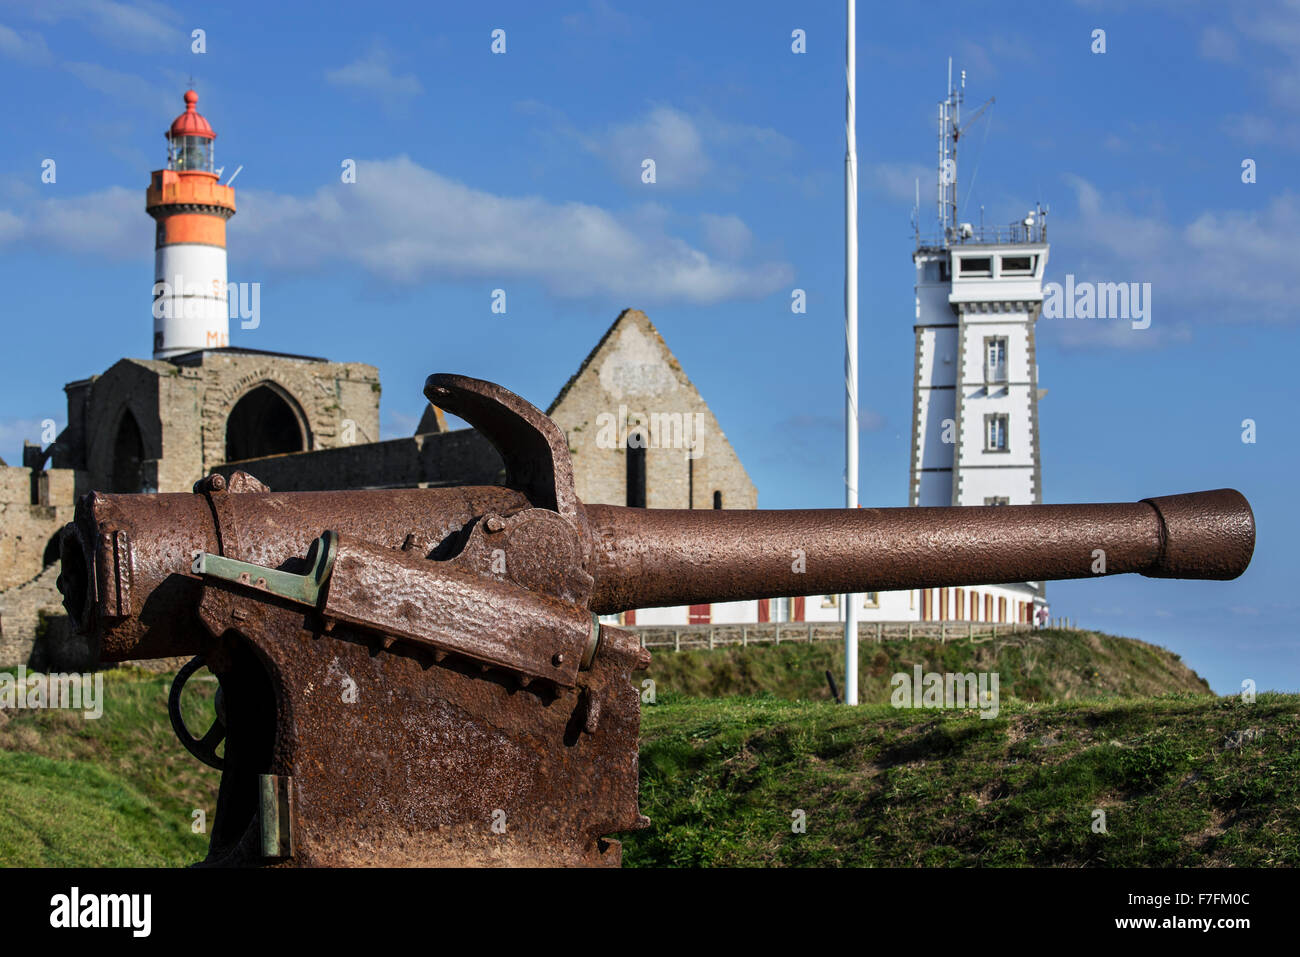 Lahitolle 95 mm cannon, French 19th century cannon at the Pointe Saint-Mathieu, Finistère, Brittany, France - Stock Image